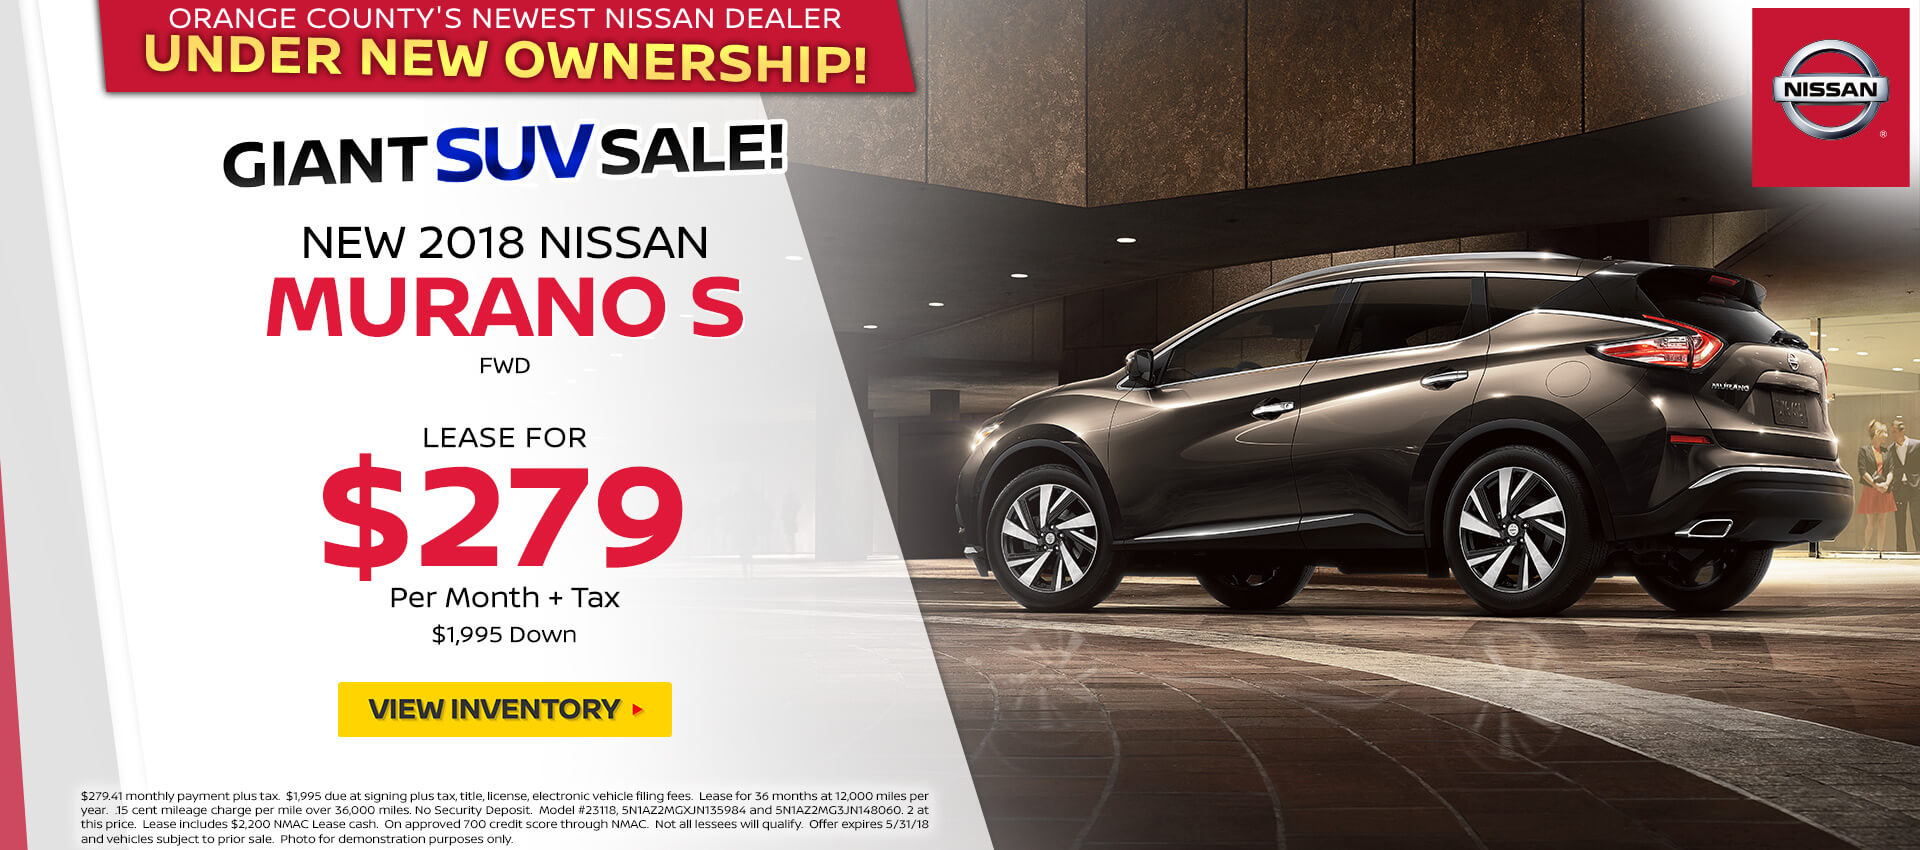 2018 Nissan Murano $279 Lease